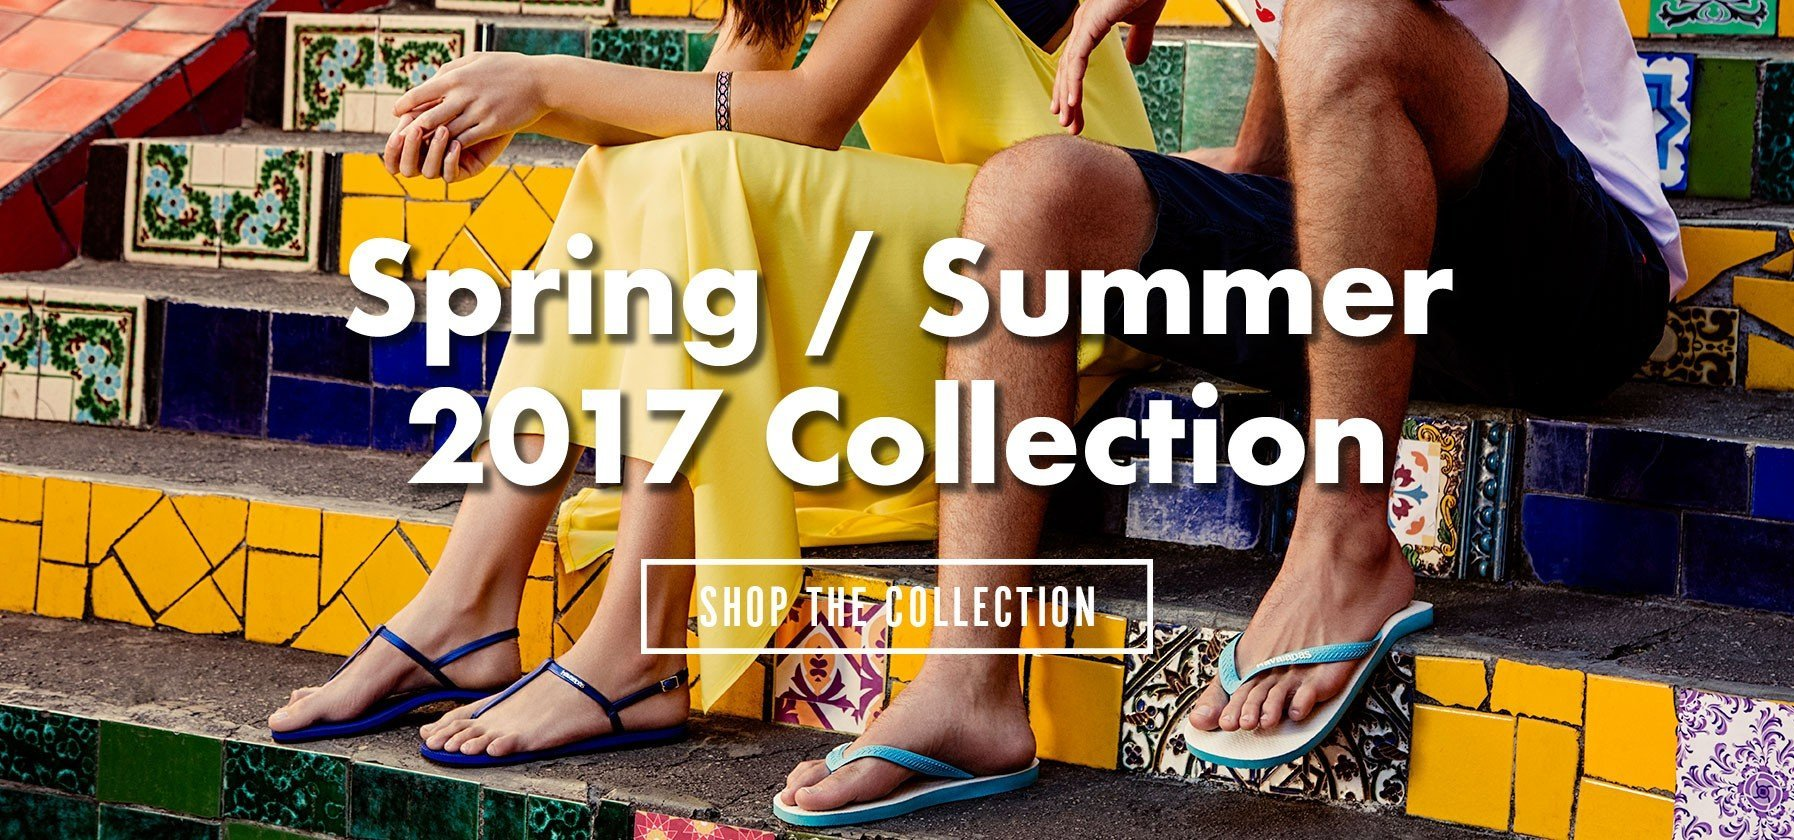 Spring / Summer 2017 Collection